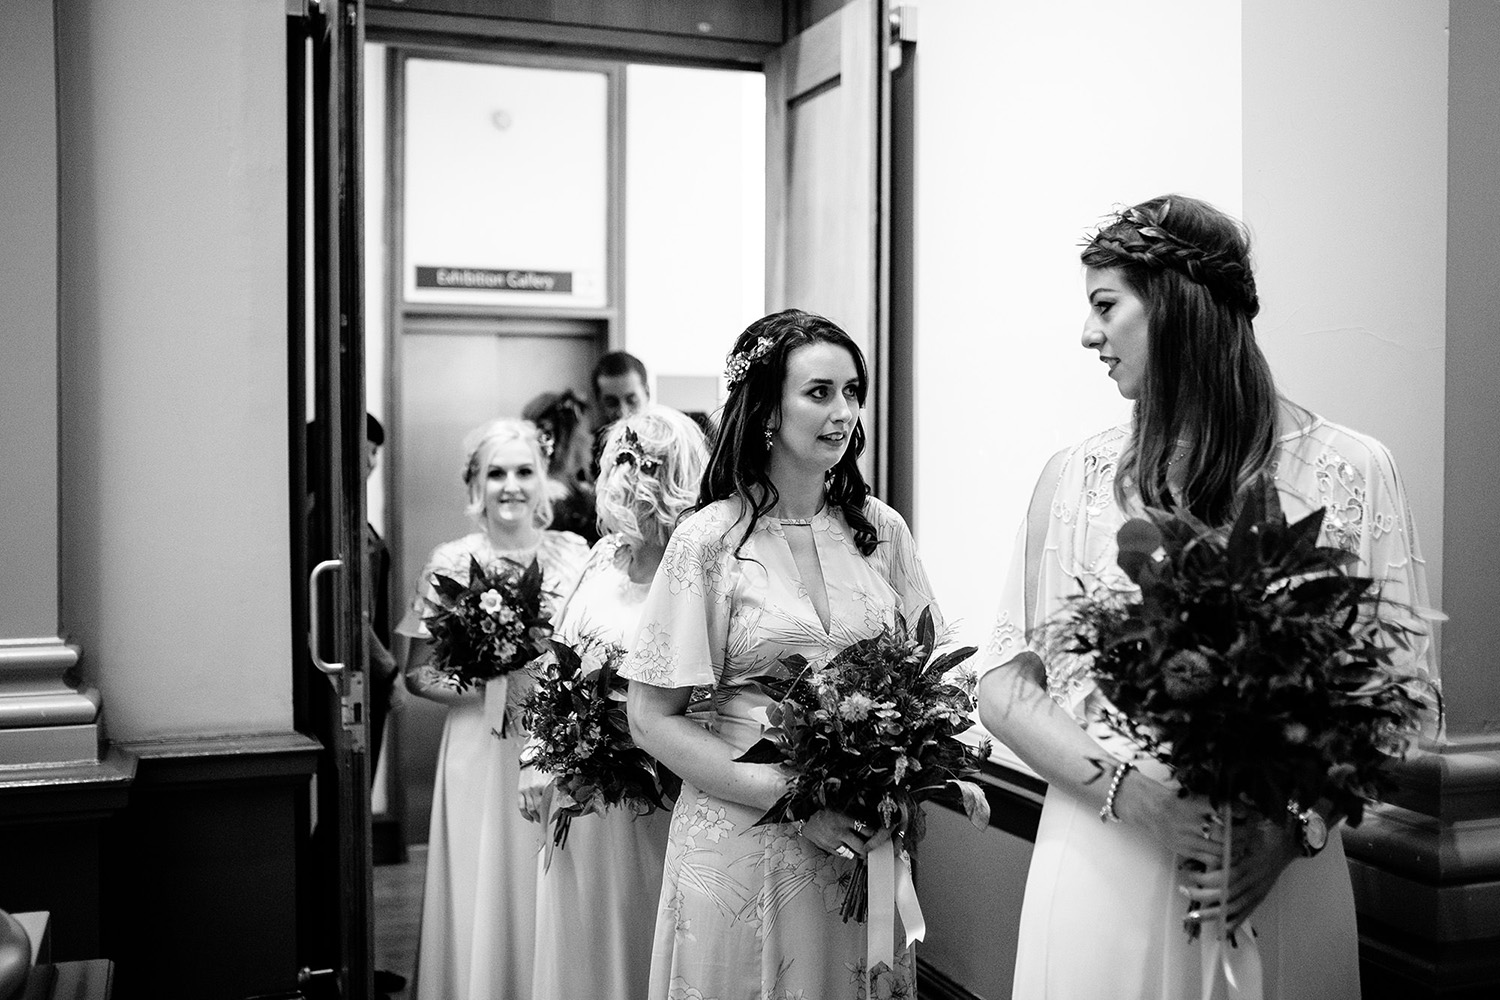 LAING ART GALLERY NEWCASTLE WEDDING PHOTOGRAPHY 62.JPG